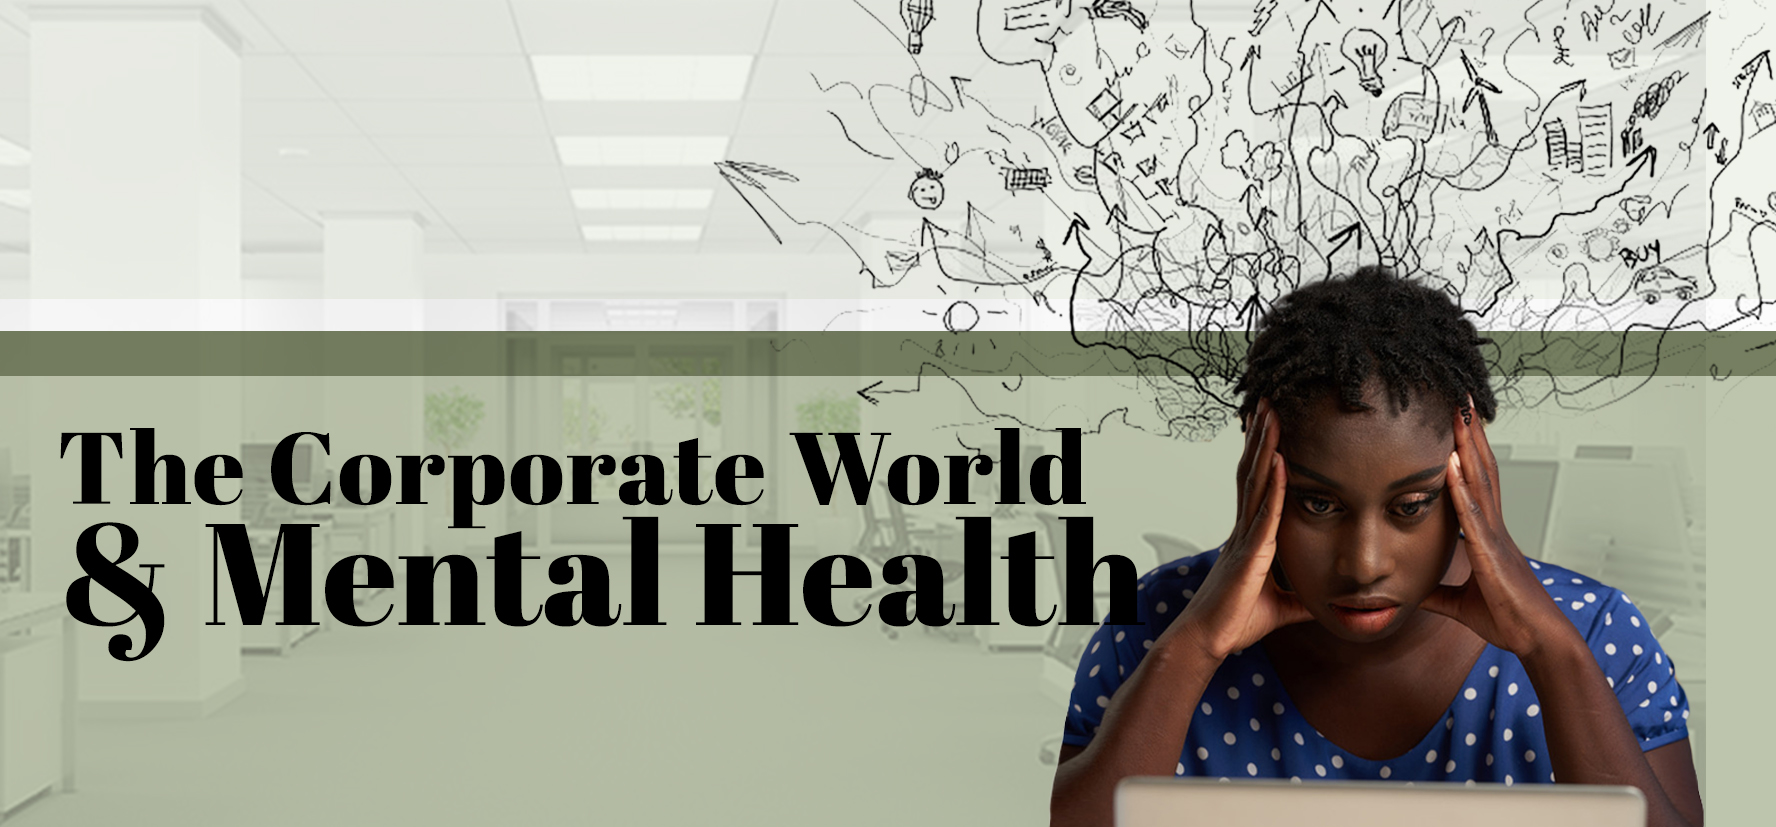 THE CORPORATE WORLD & MENTAL HEALTH